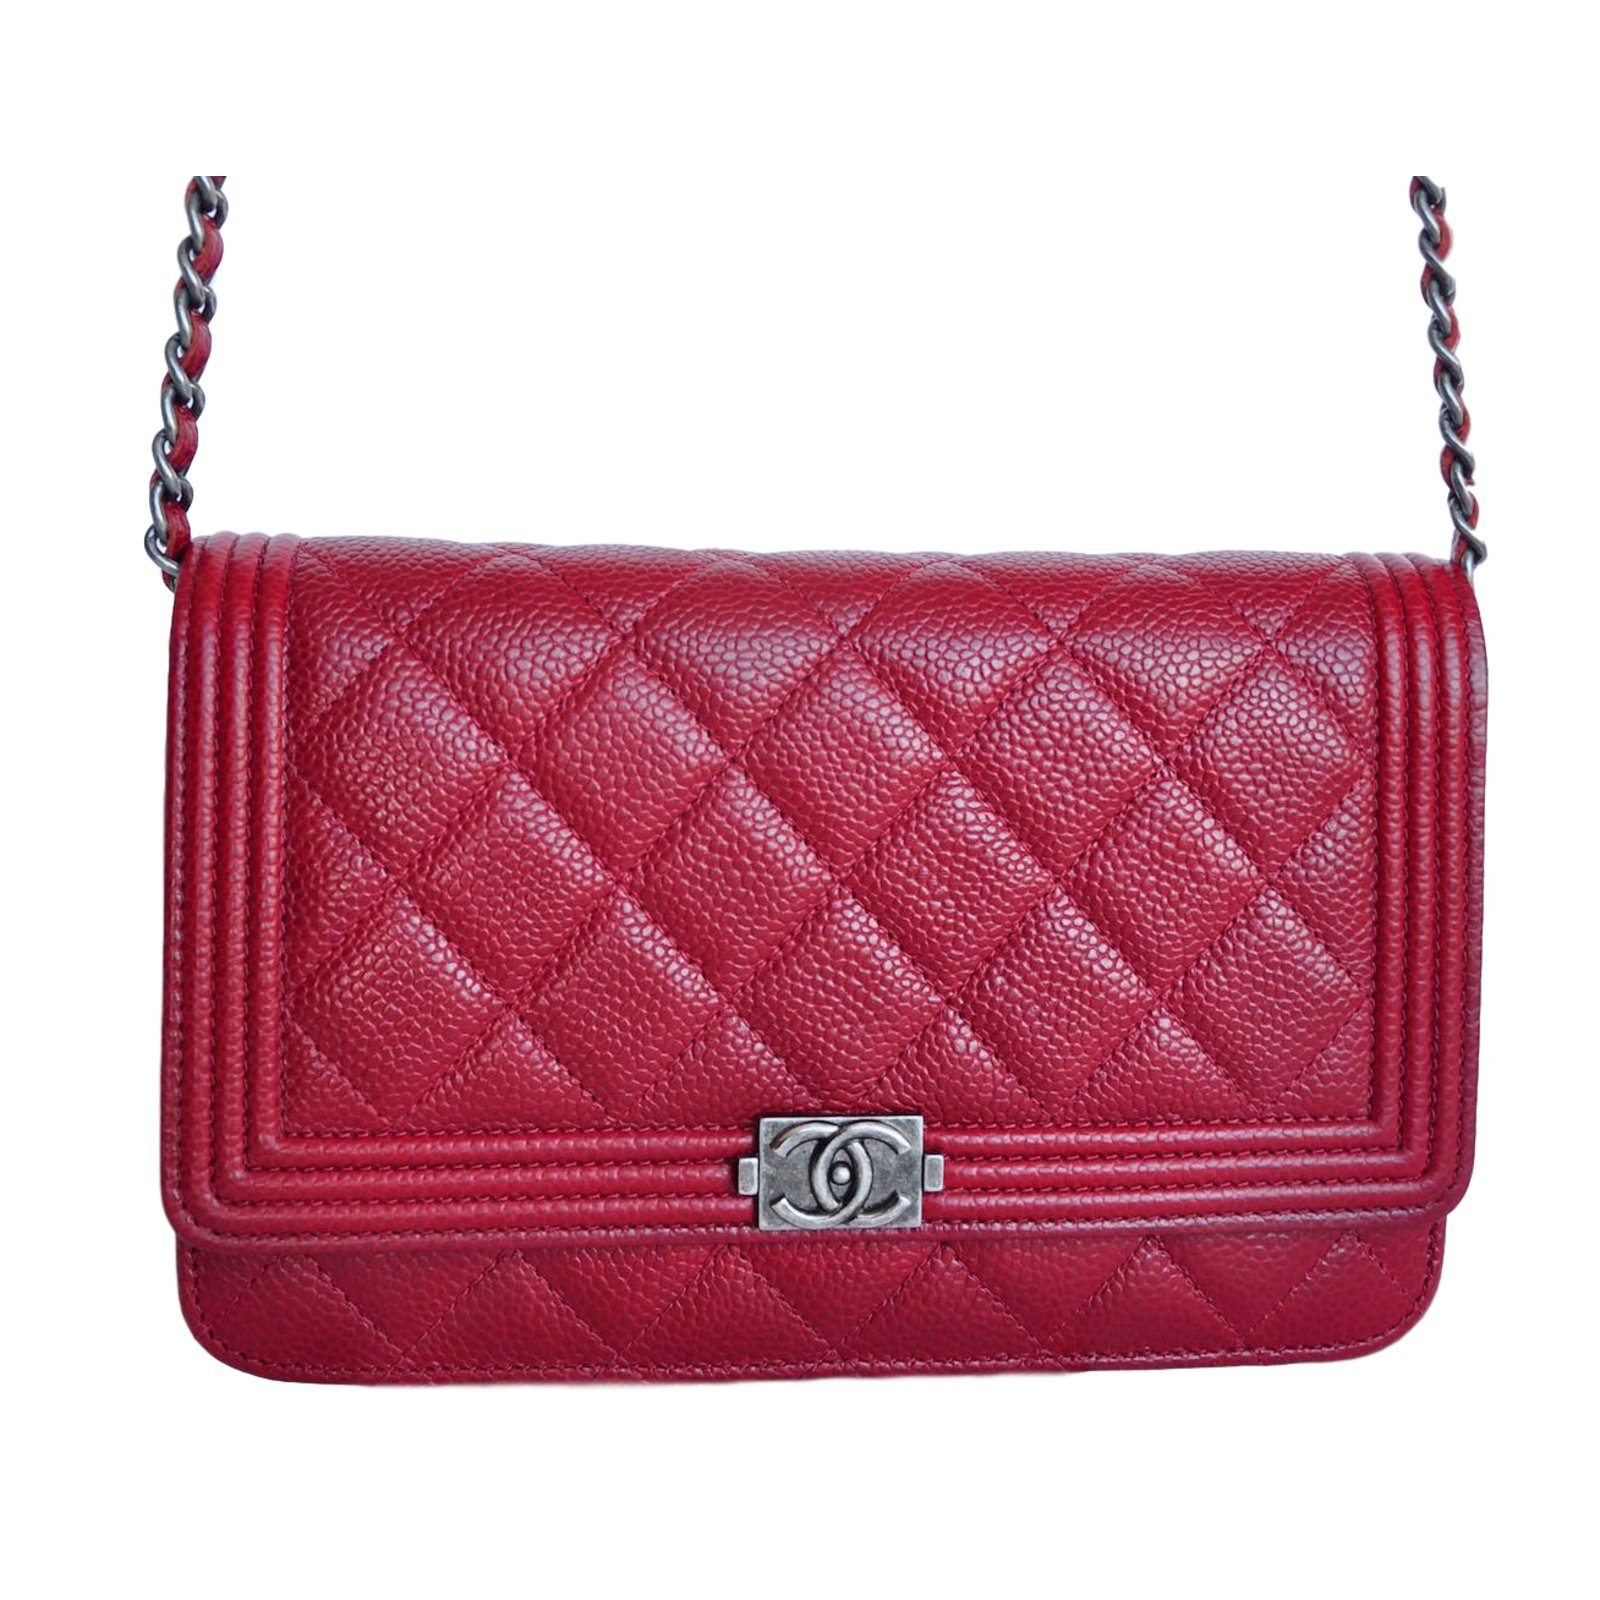 d85b572beb2f Chanel WOC Wallet On Chain Clutch bags Leather Dark red ref.17444 - Joli  Closet